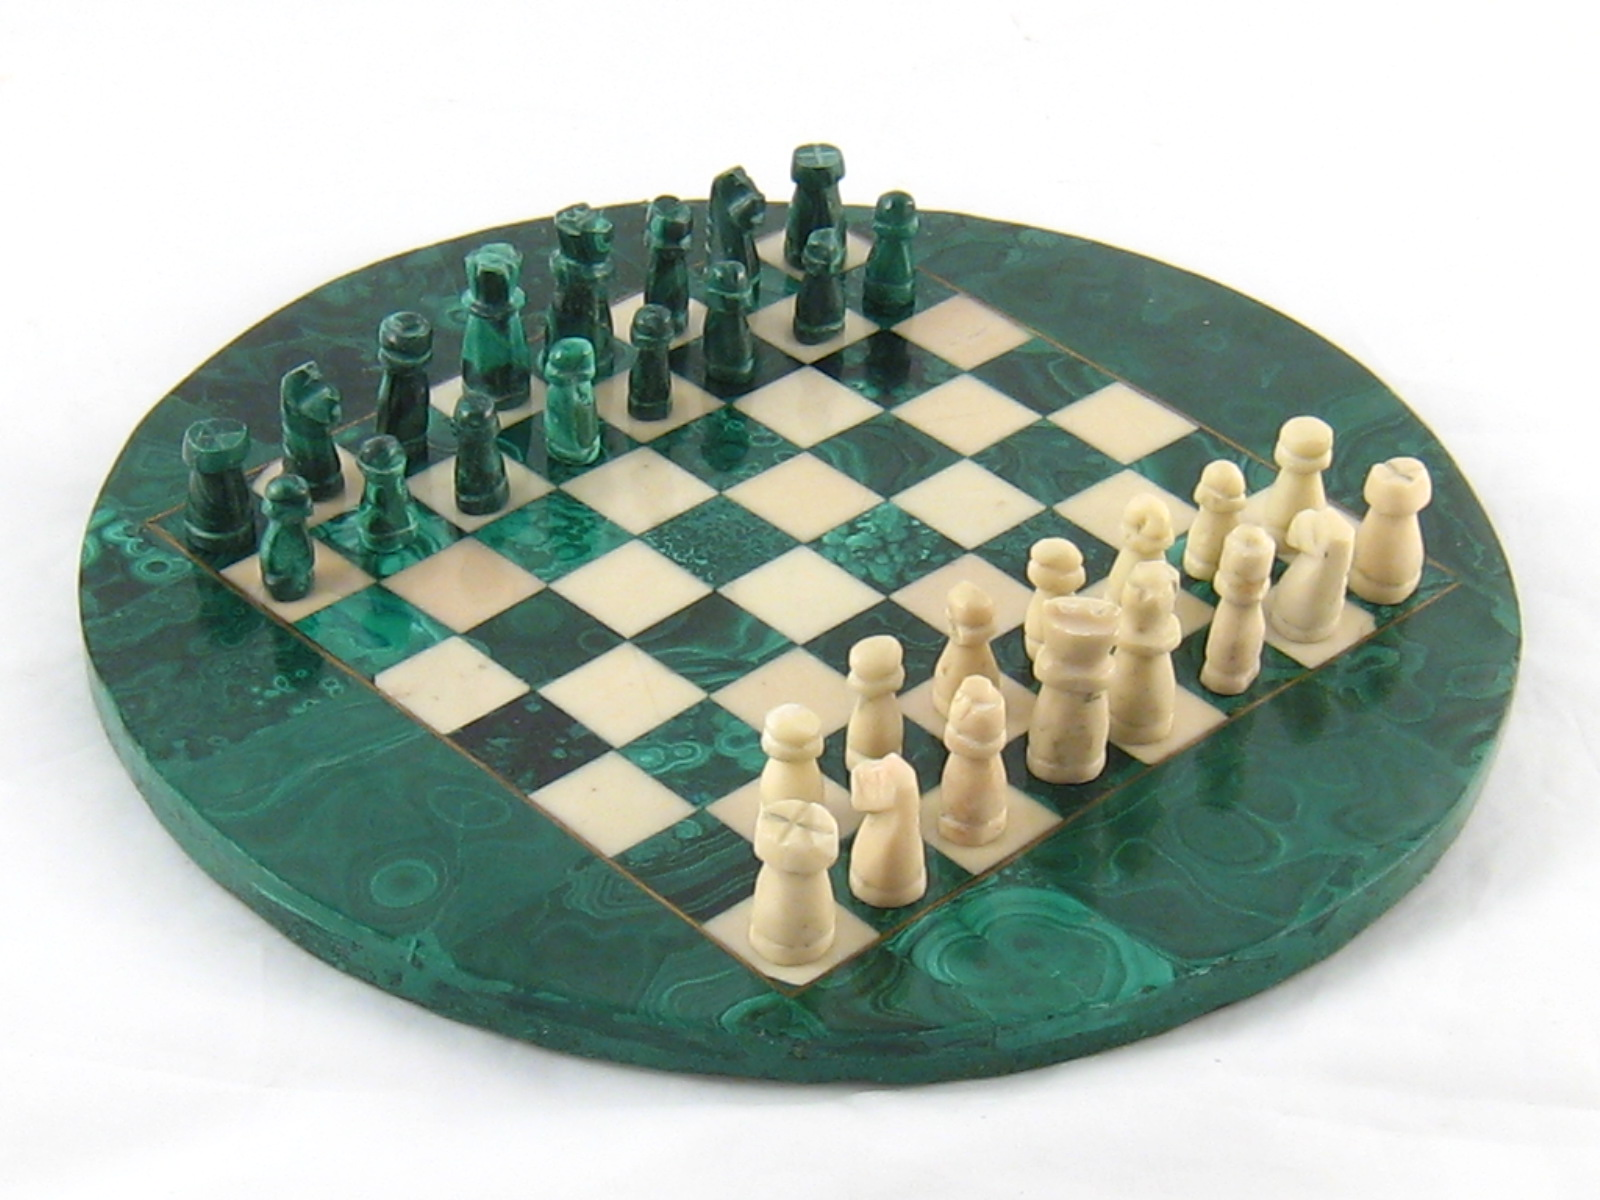 Lot 505 - A circular green and white chess set and board.